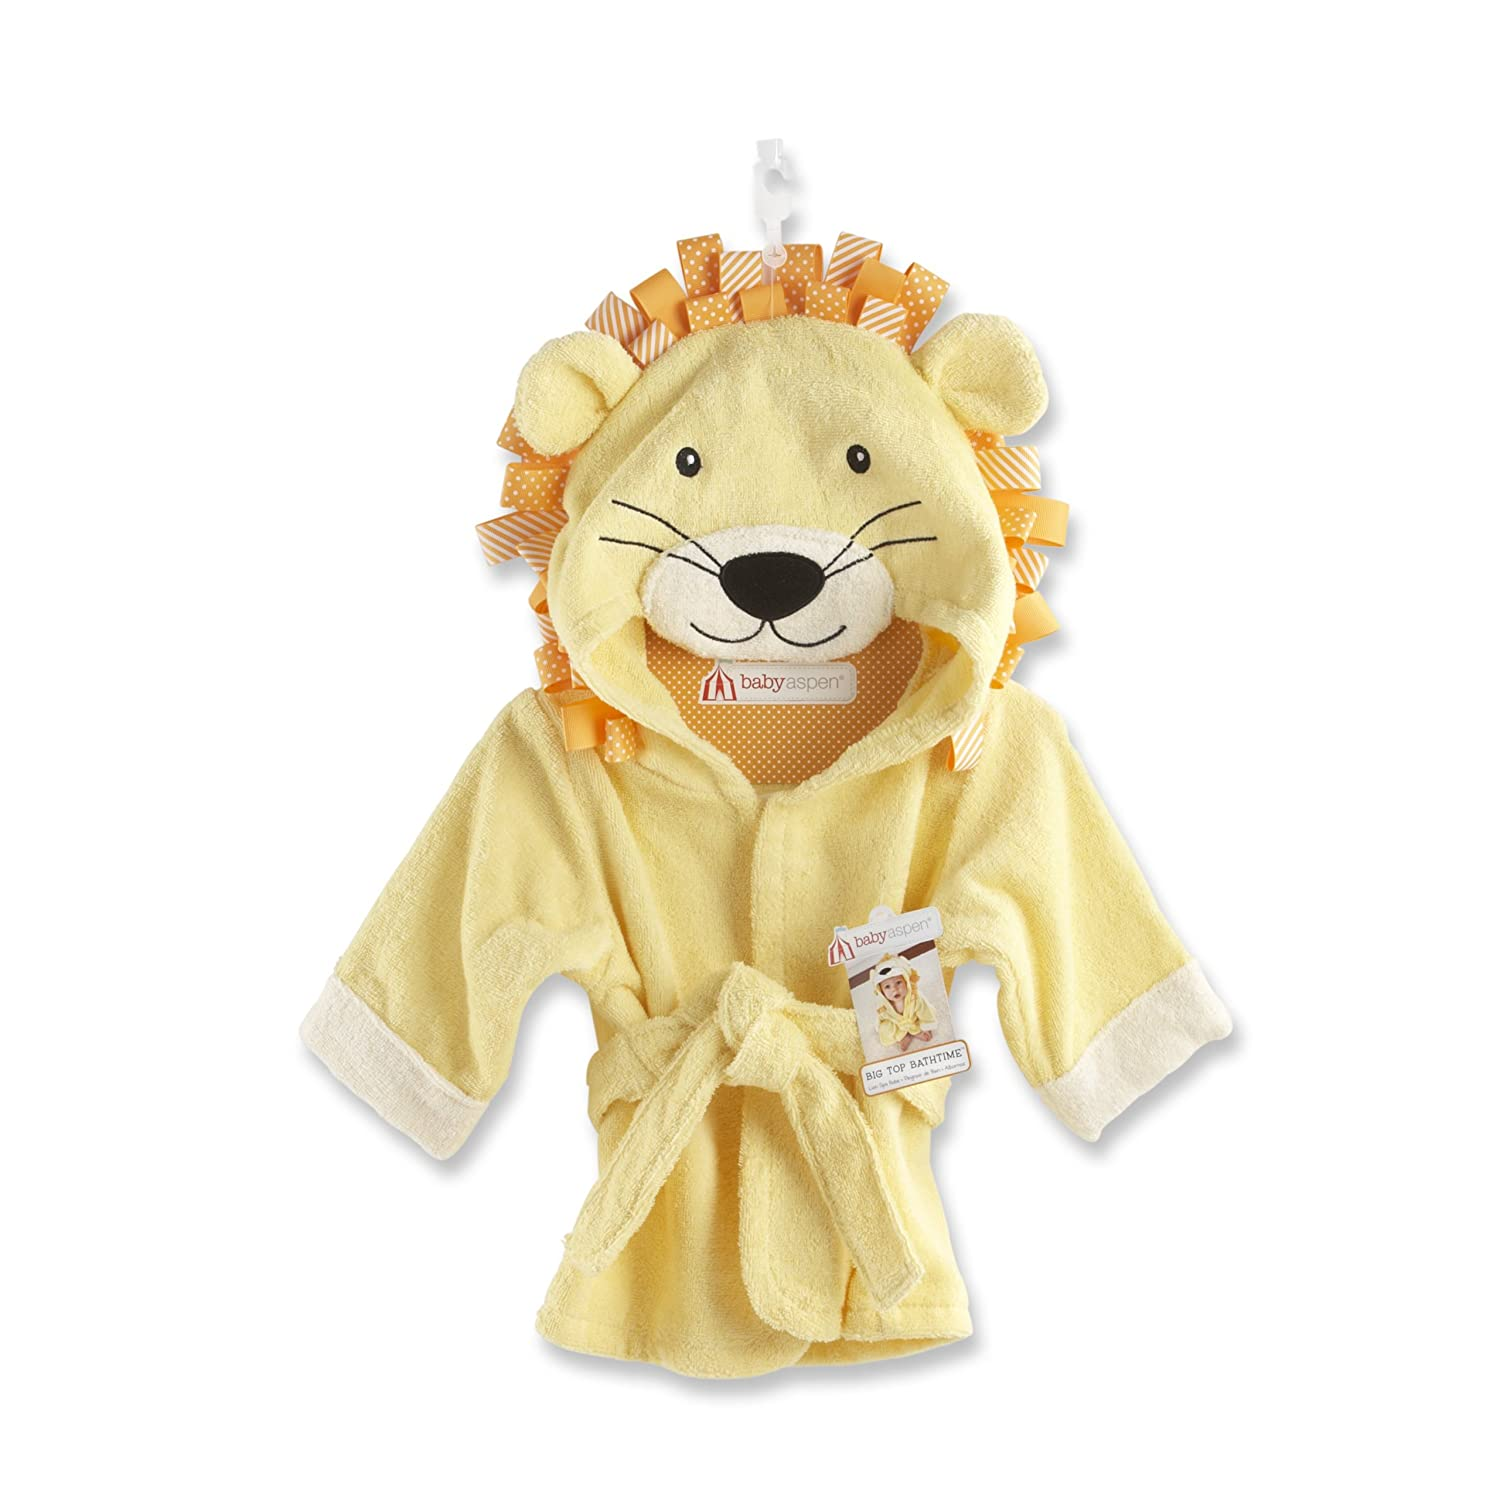 Baby Aspen Lion Hooded Spa Robe (Big Top Bath Time) BA14011NA